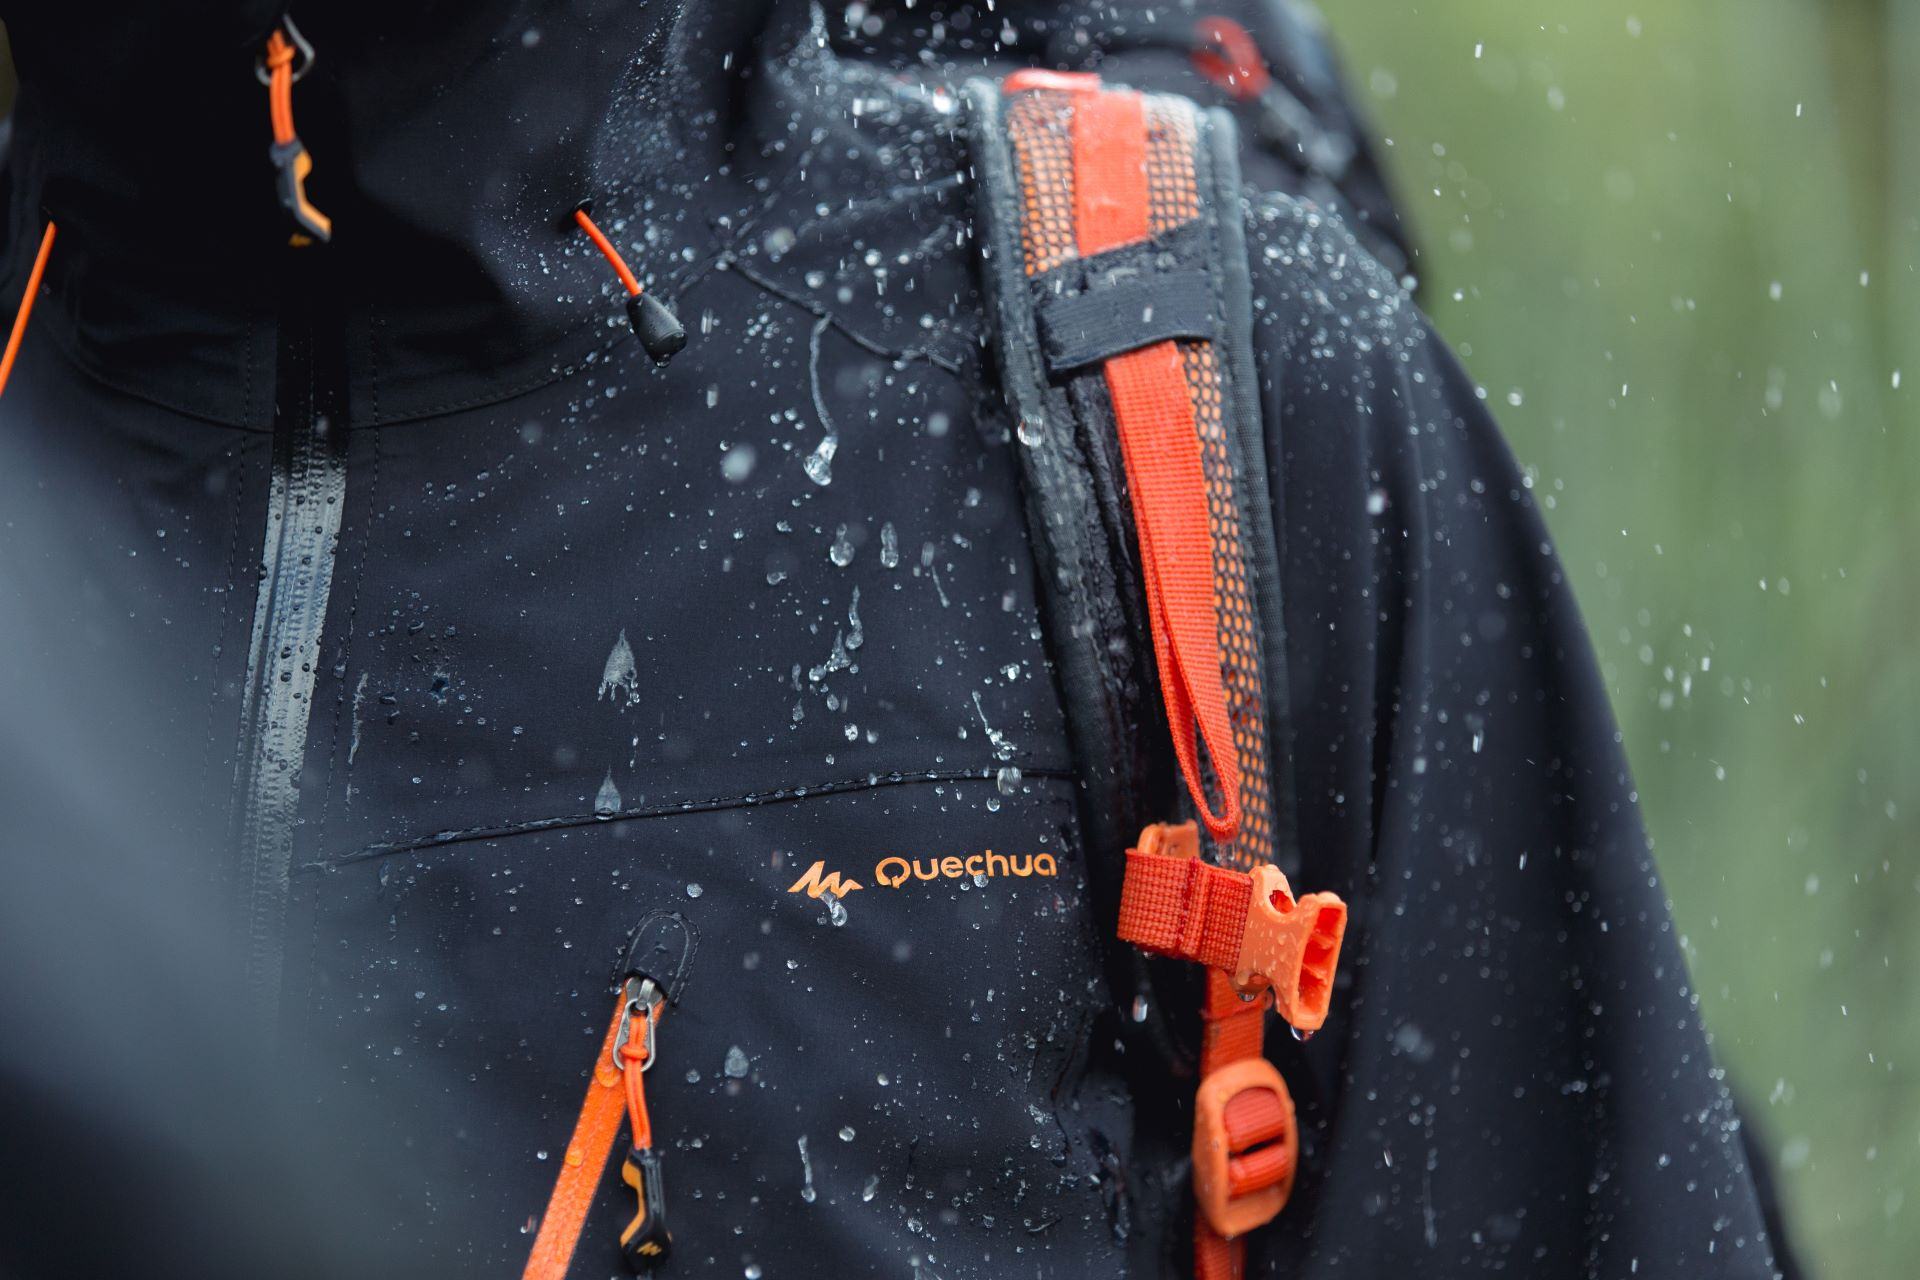 How To Clean And Re-waterproof Your Rain Jacket?